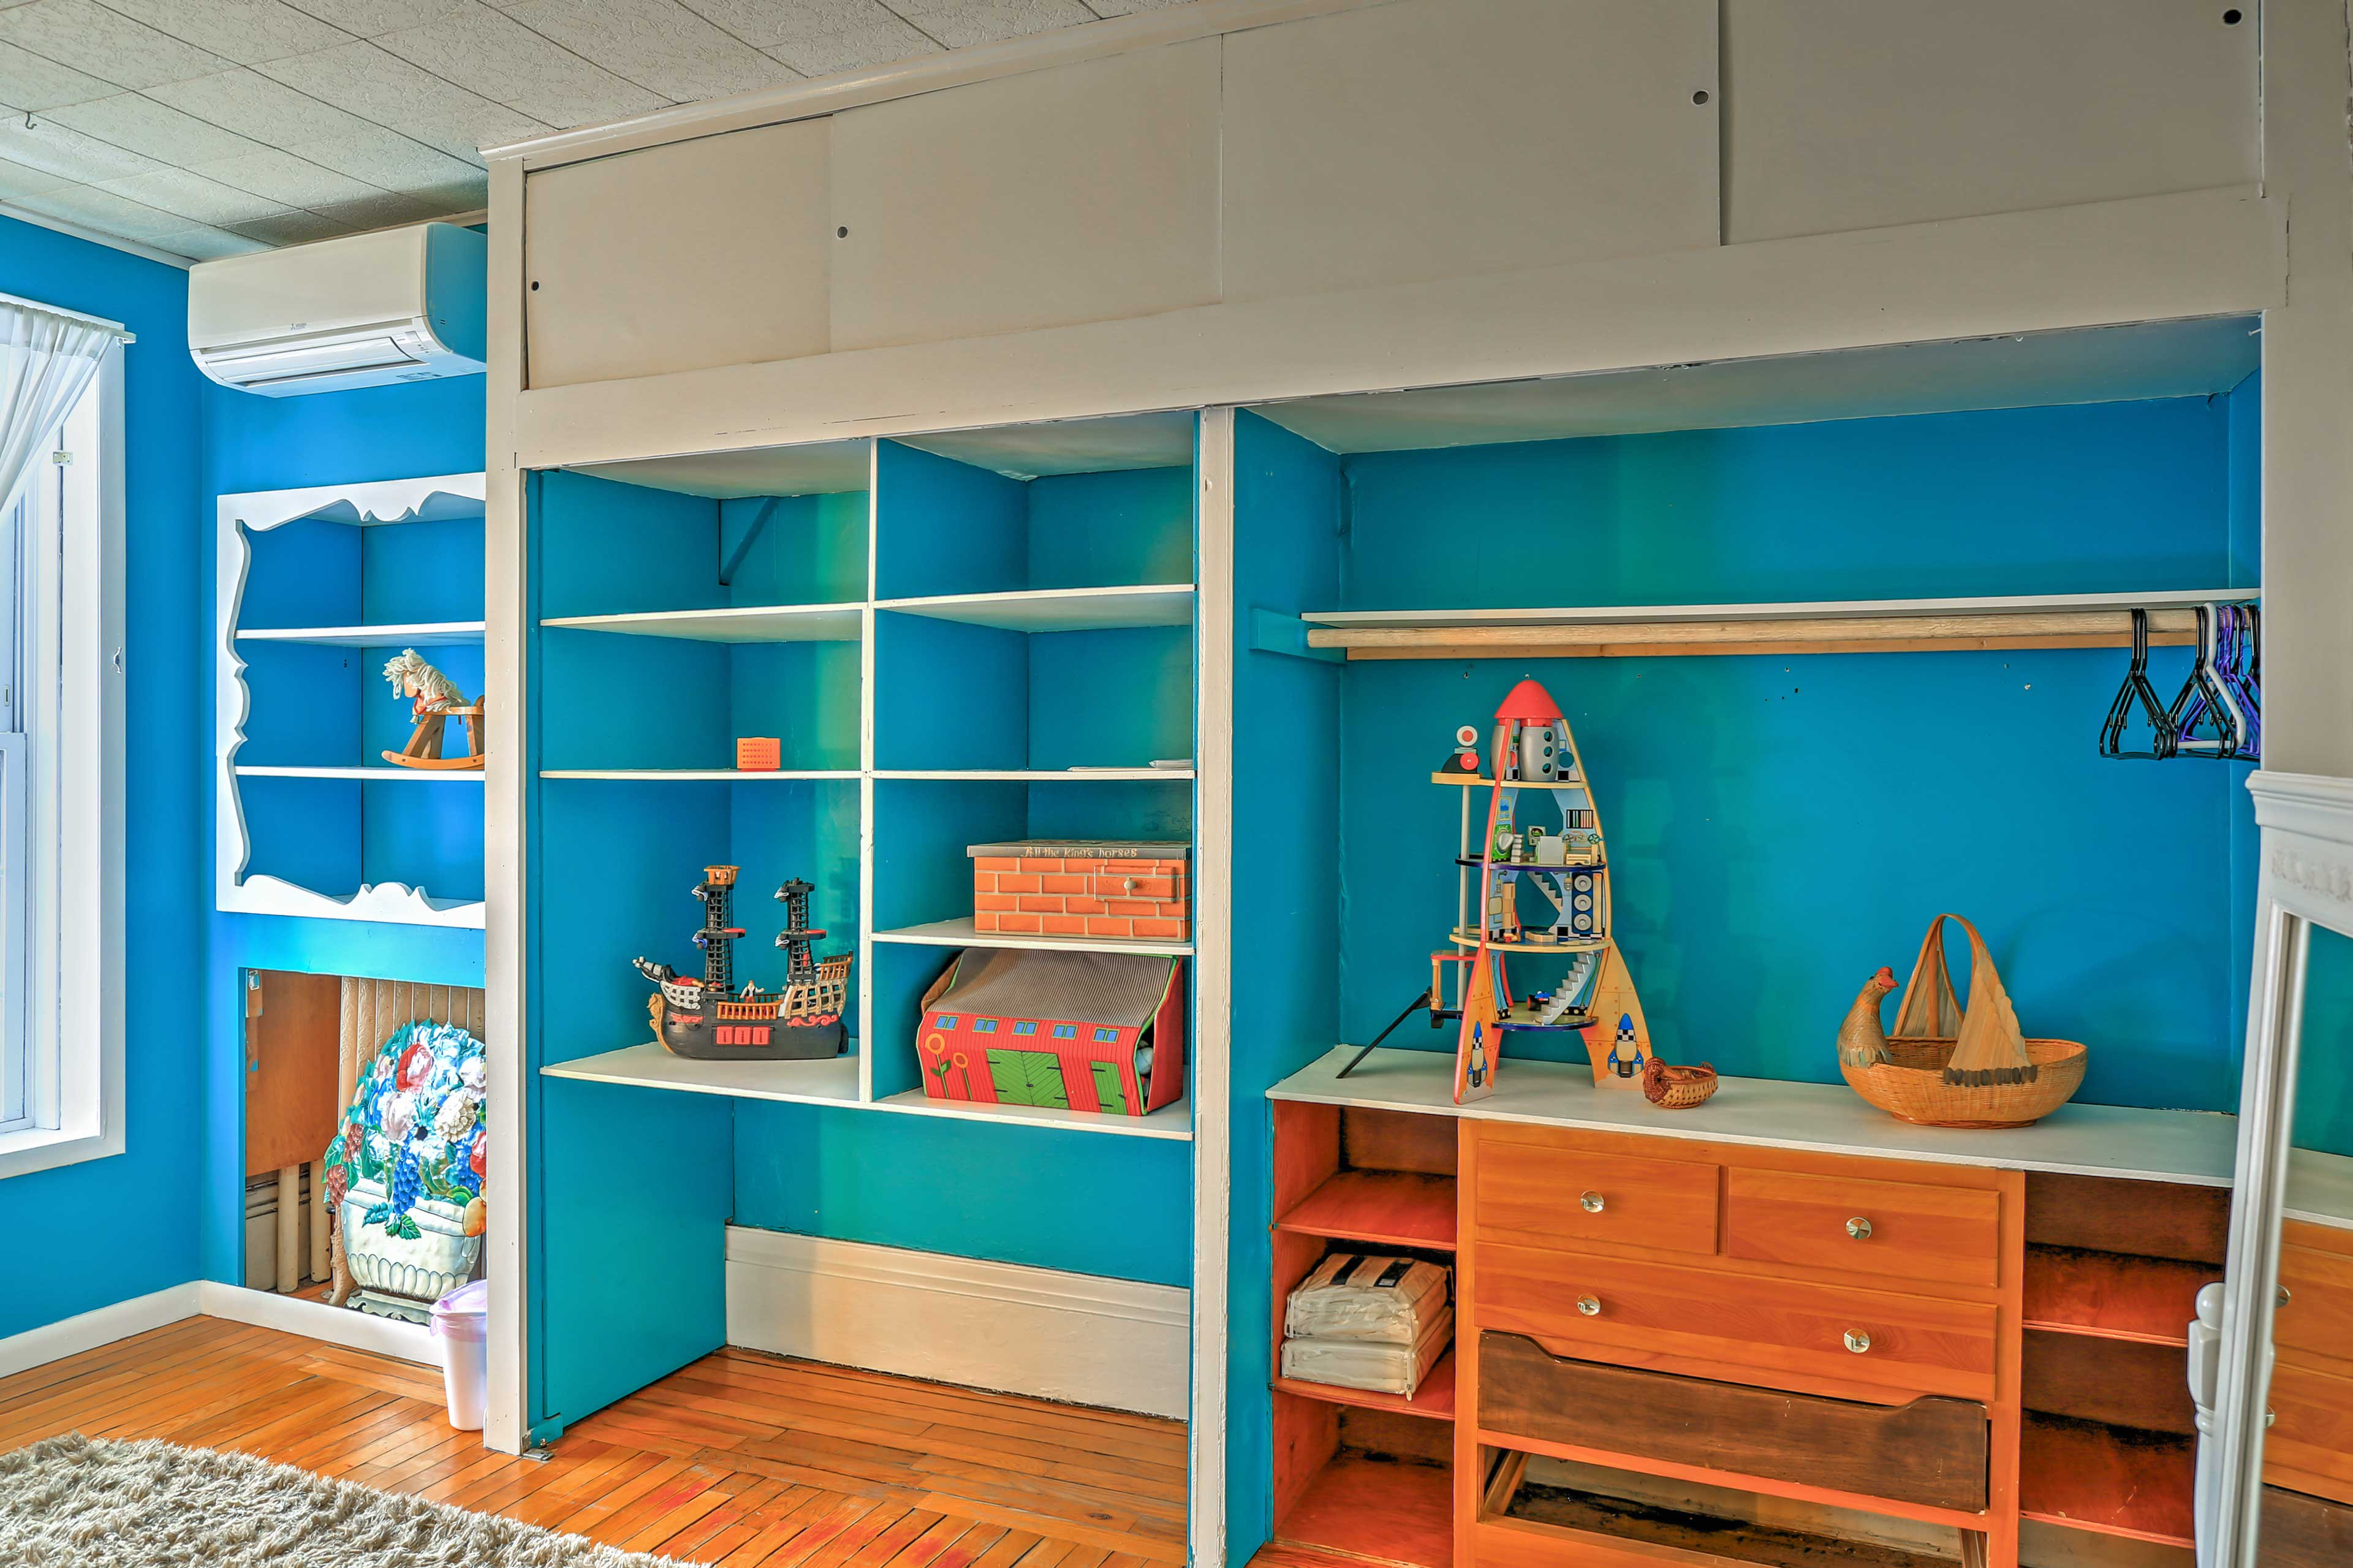 This room is brightened by vibrant blue walls!